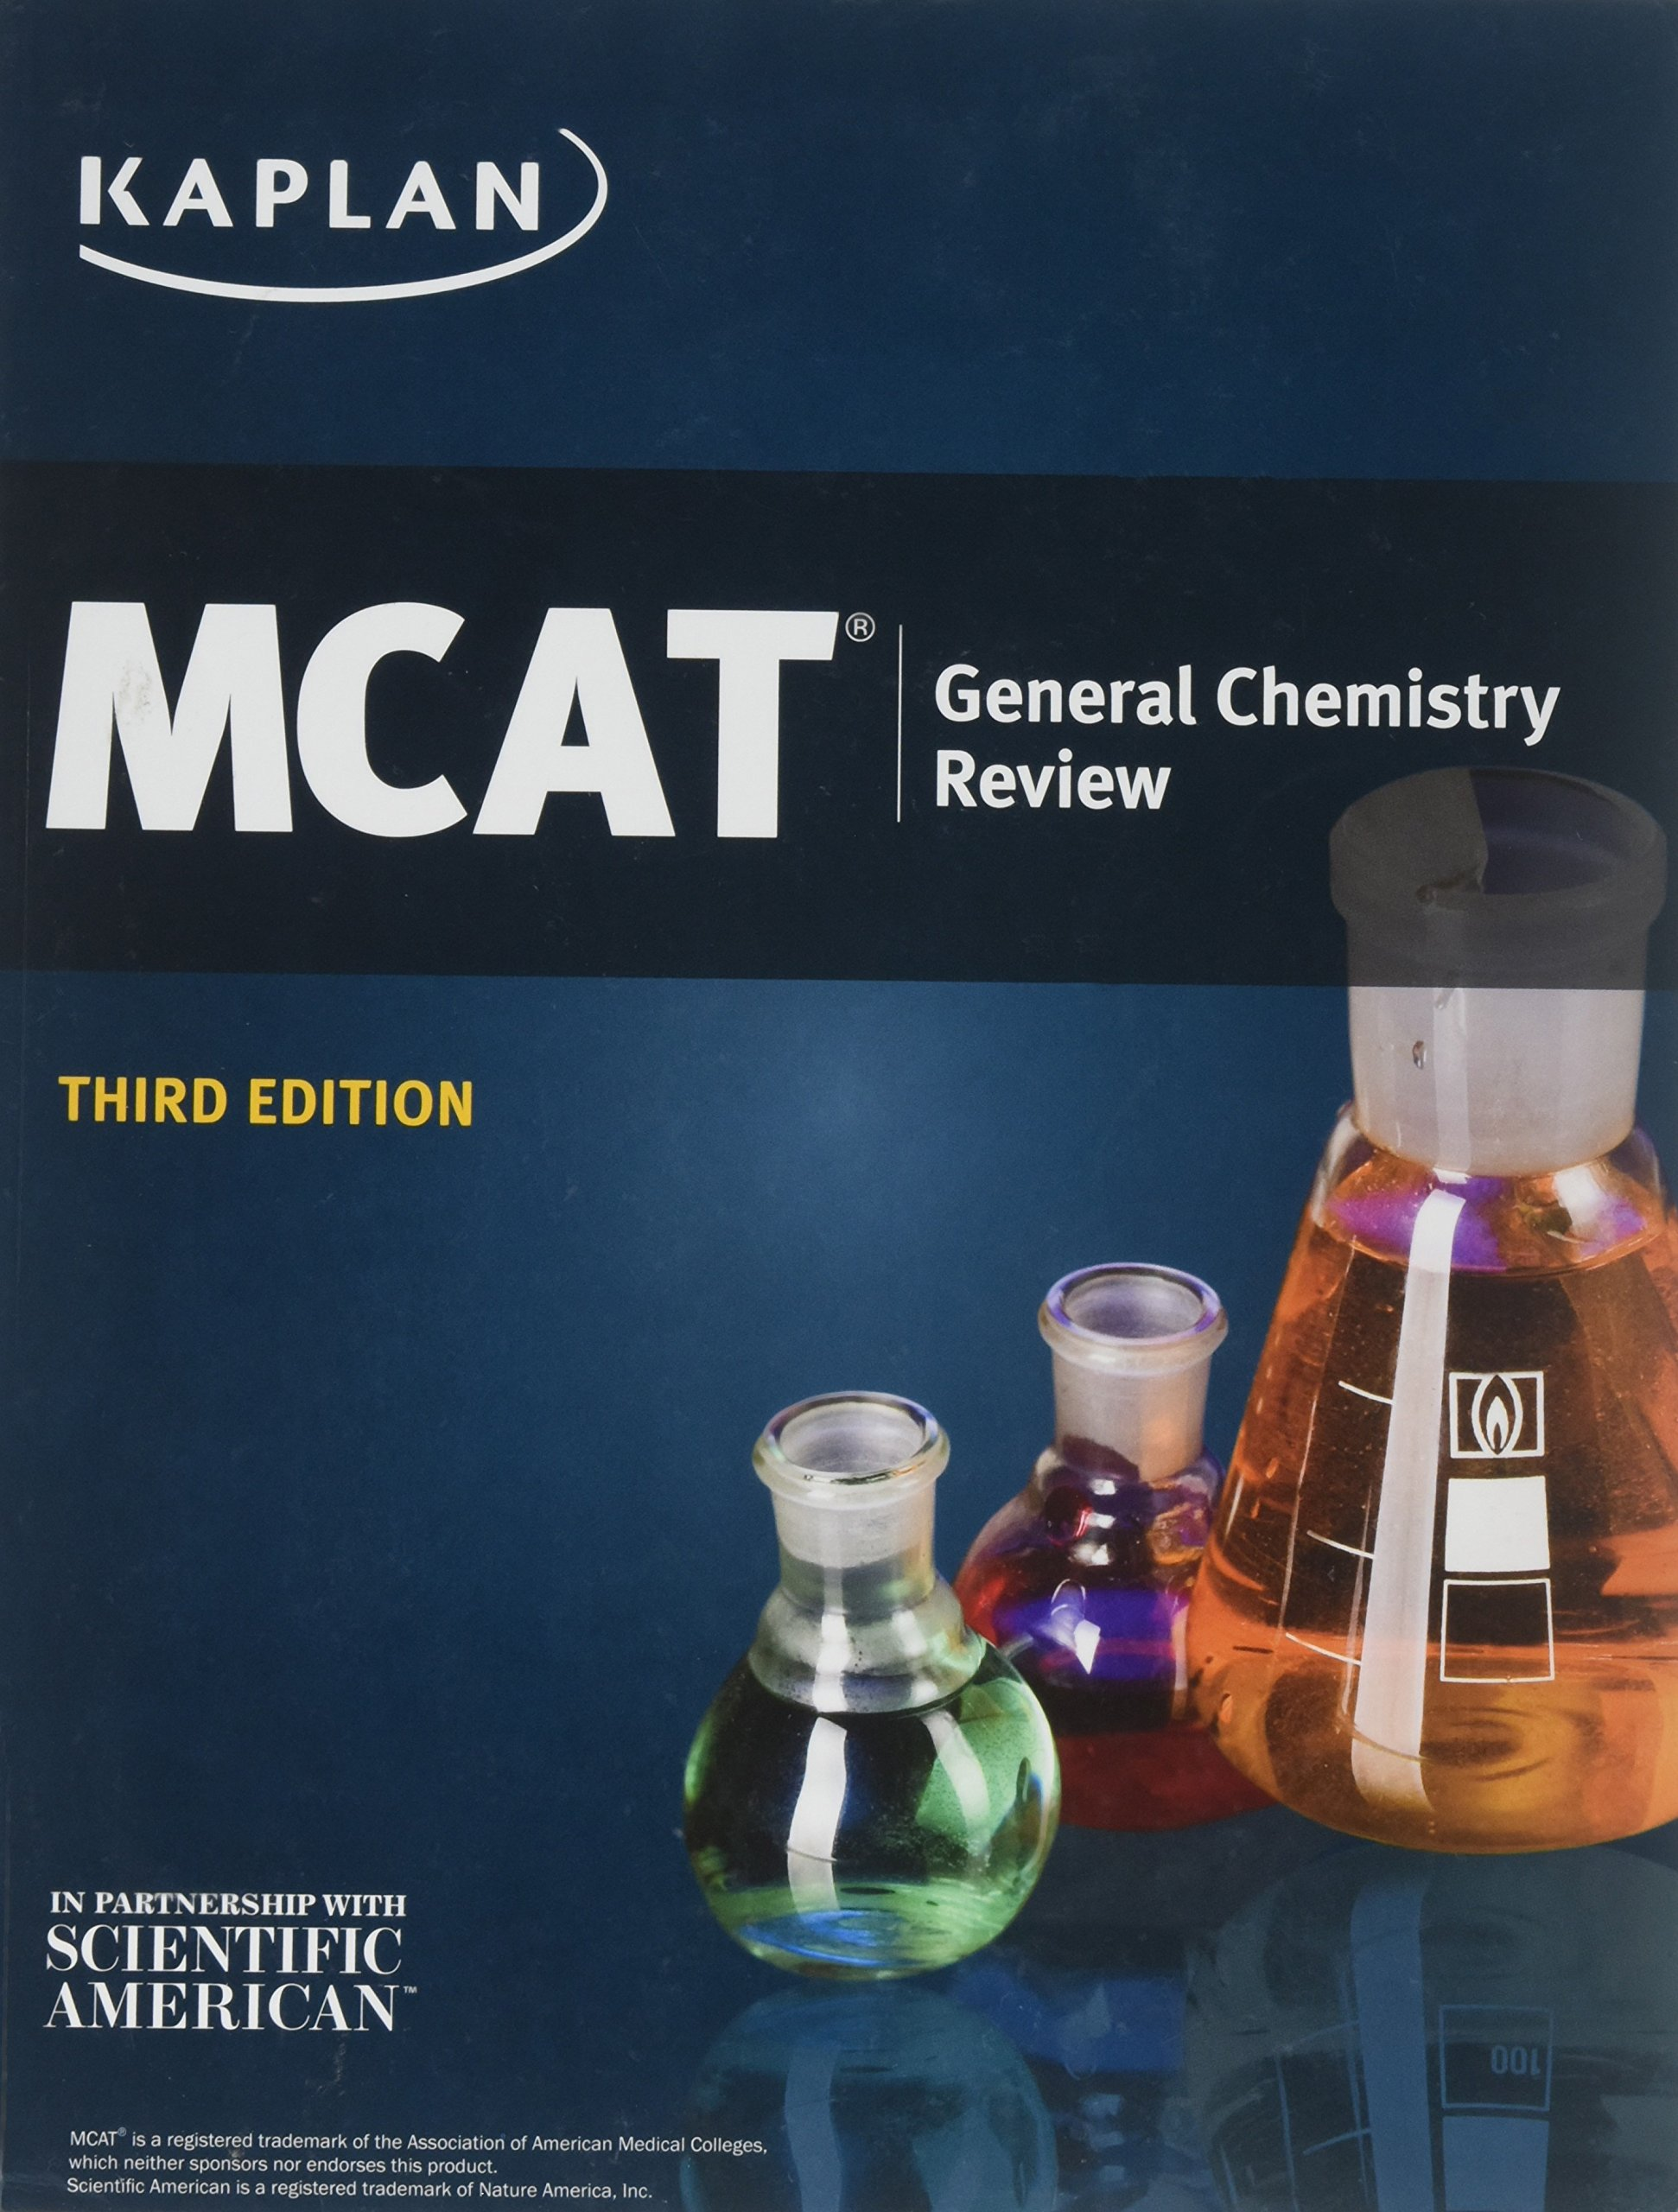 Kaplan MCAT General Chemistry Review 3rd Edition: Kaplan, MD Alexander  Stone Macnow: 9781506210032: Amazon.com: Books